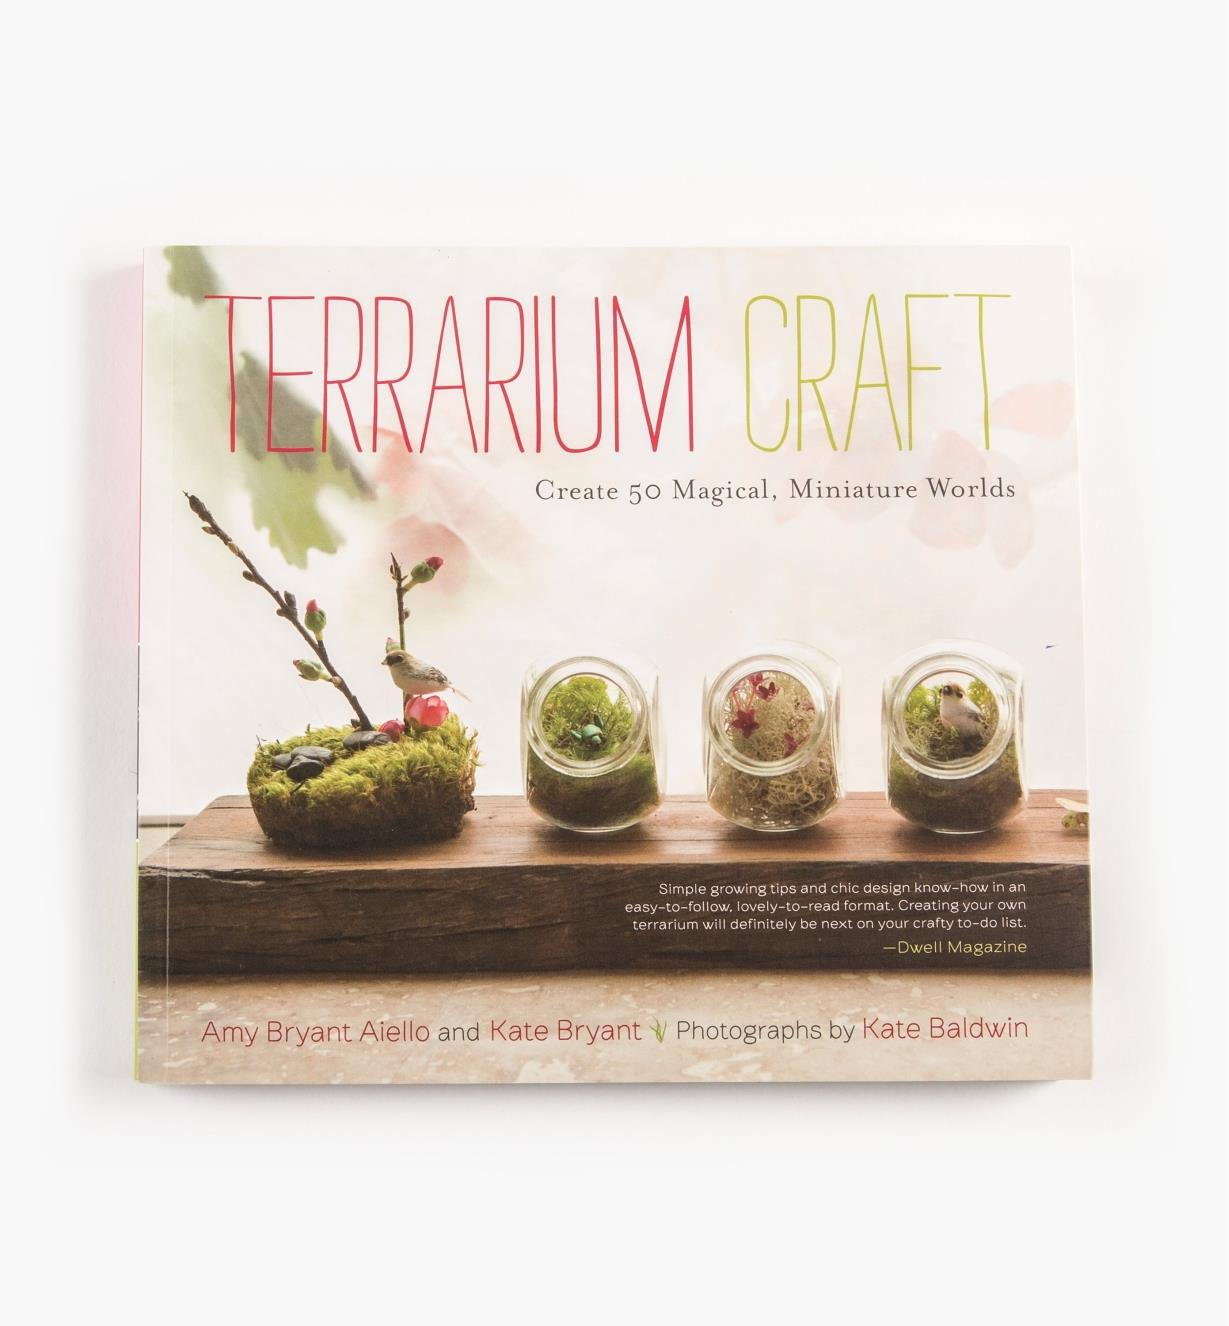 LA951 - Terrarium Craft